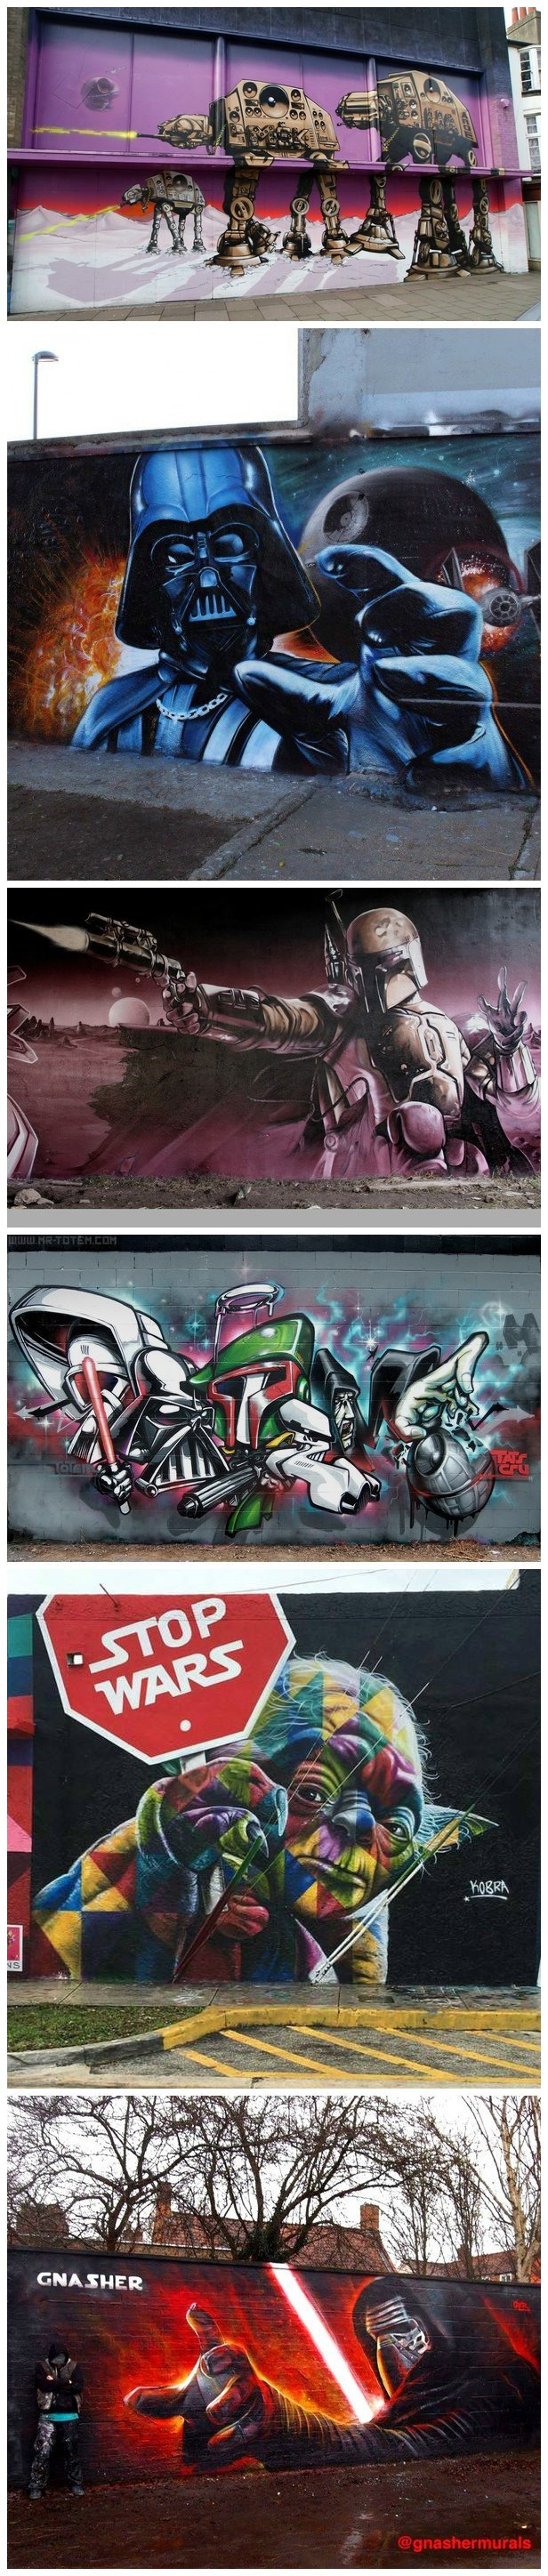 scifi,star wars,Fan Art,graffiti